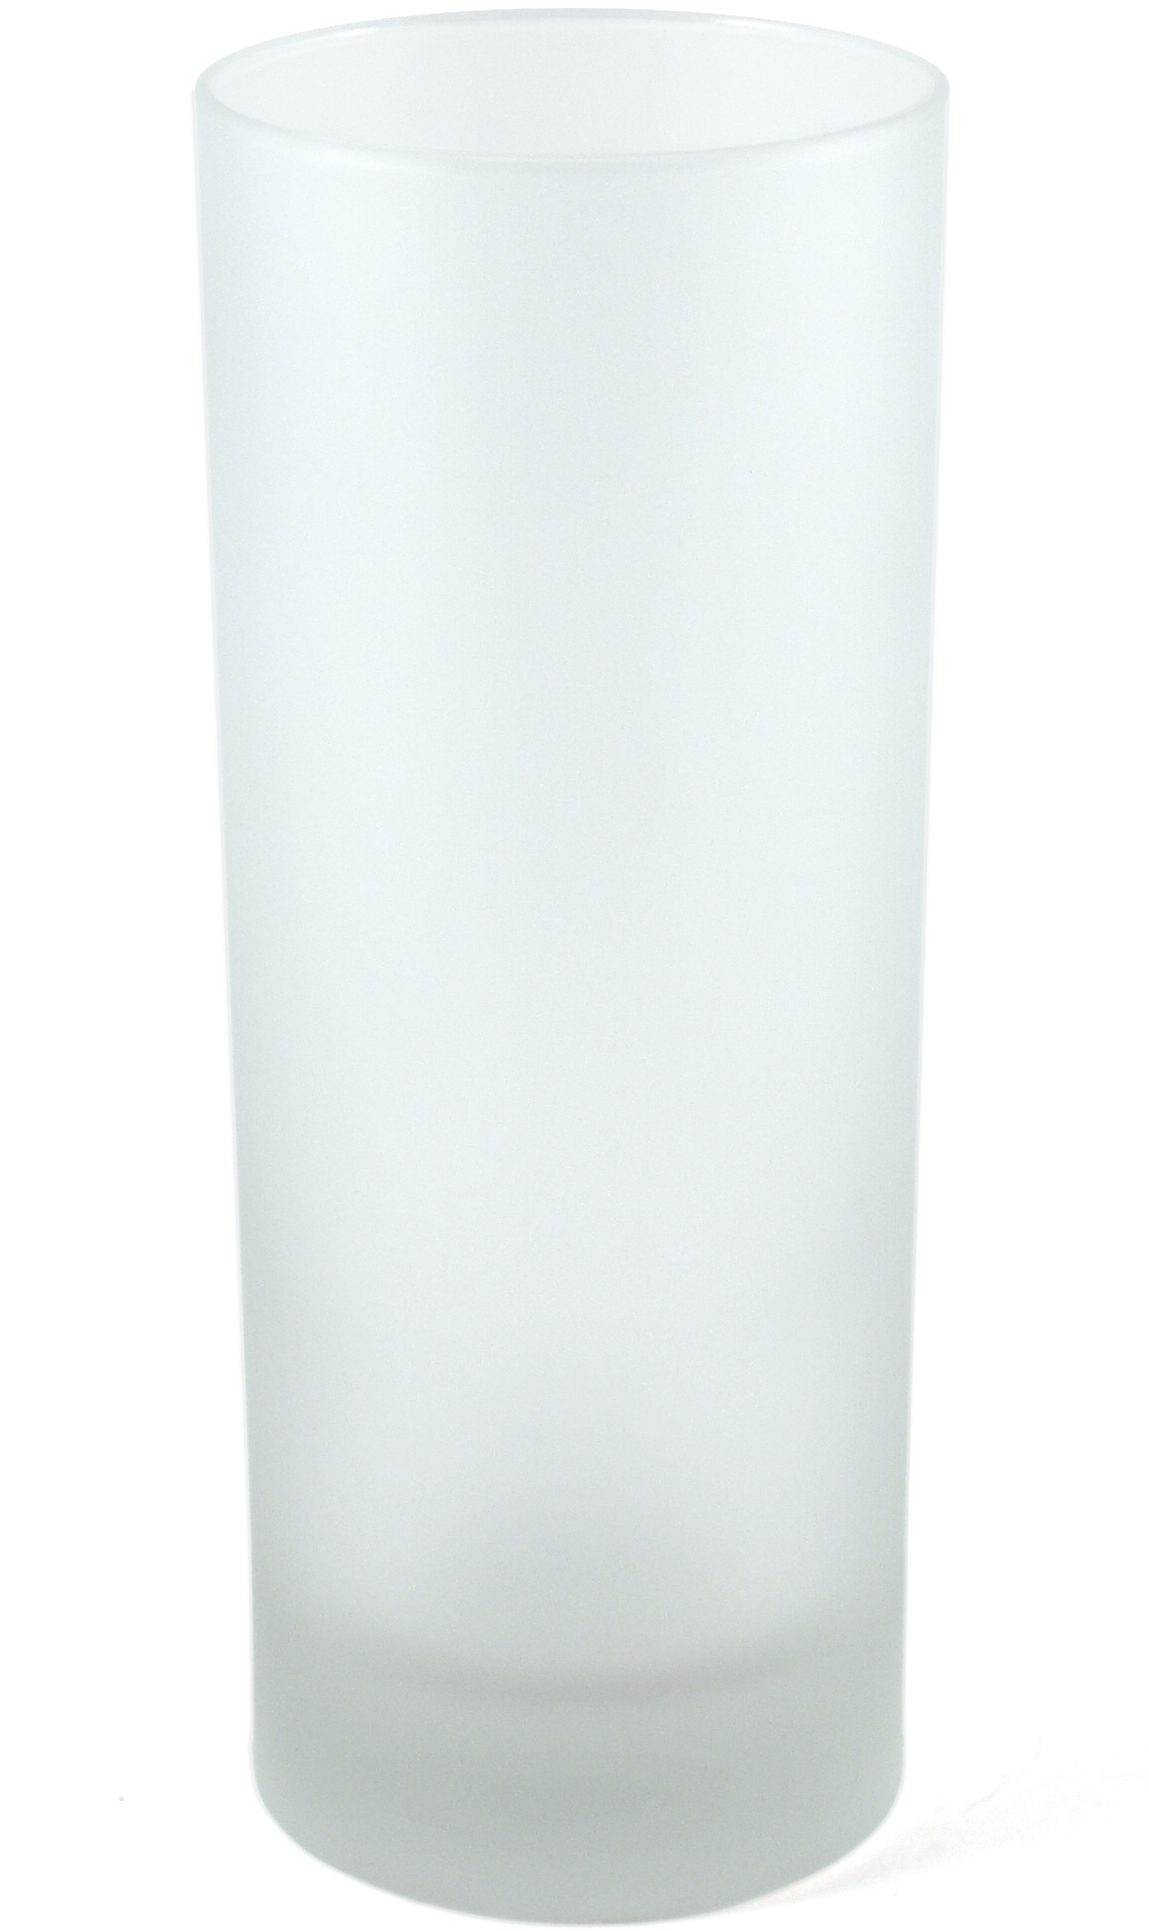 Libbey Frosted Collins Glass, Set of 24